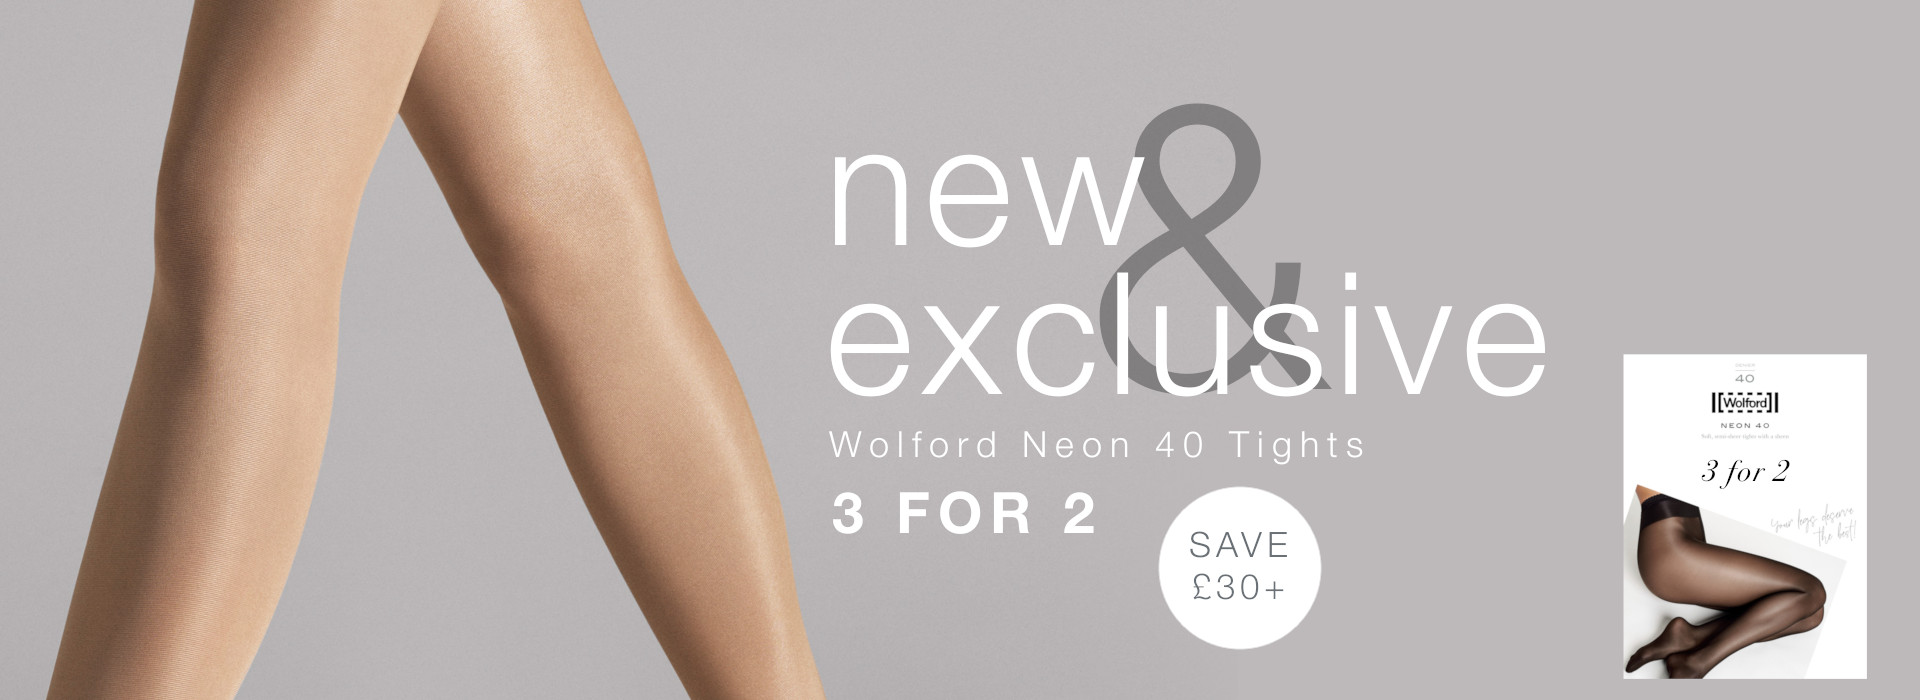 wolford neon 40 3 for 2